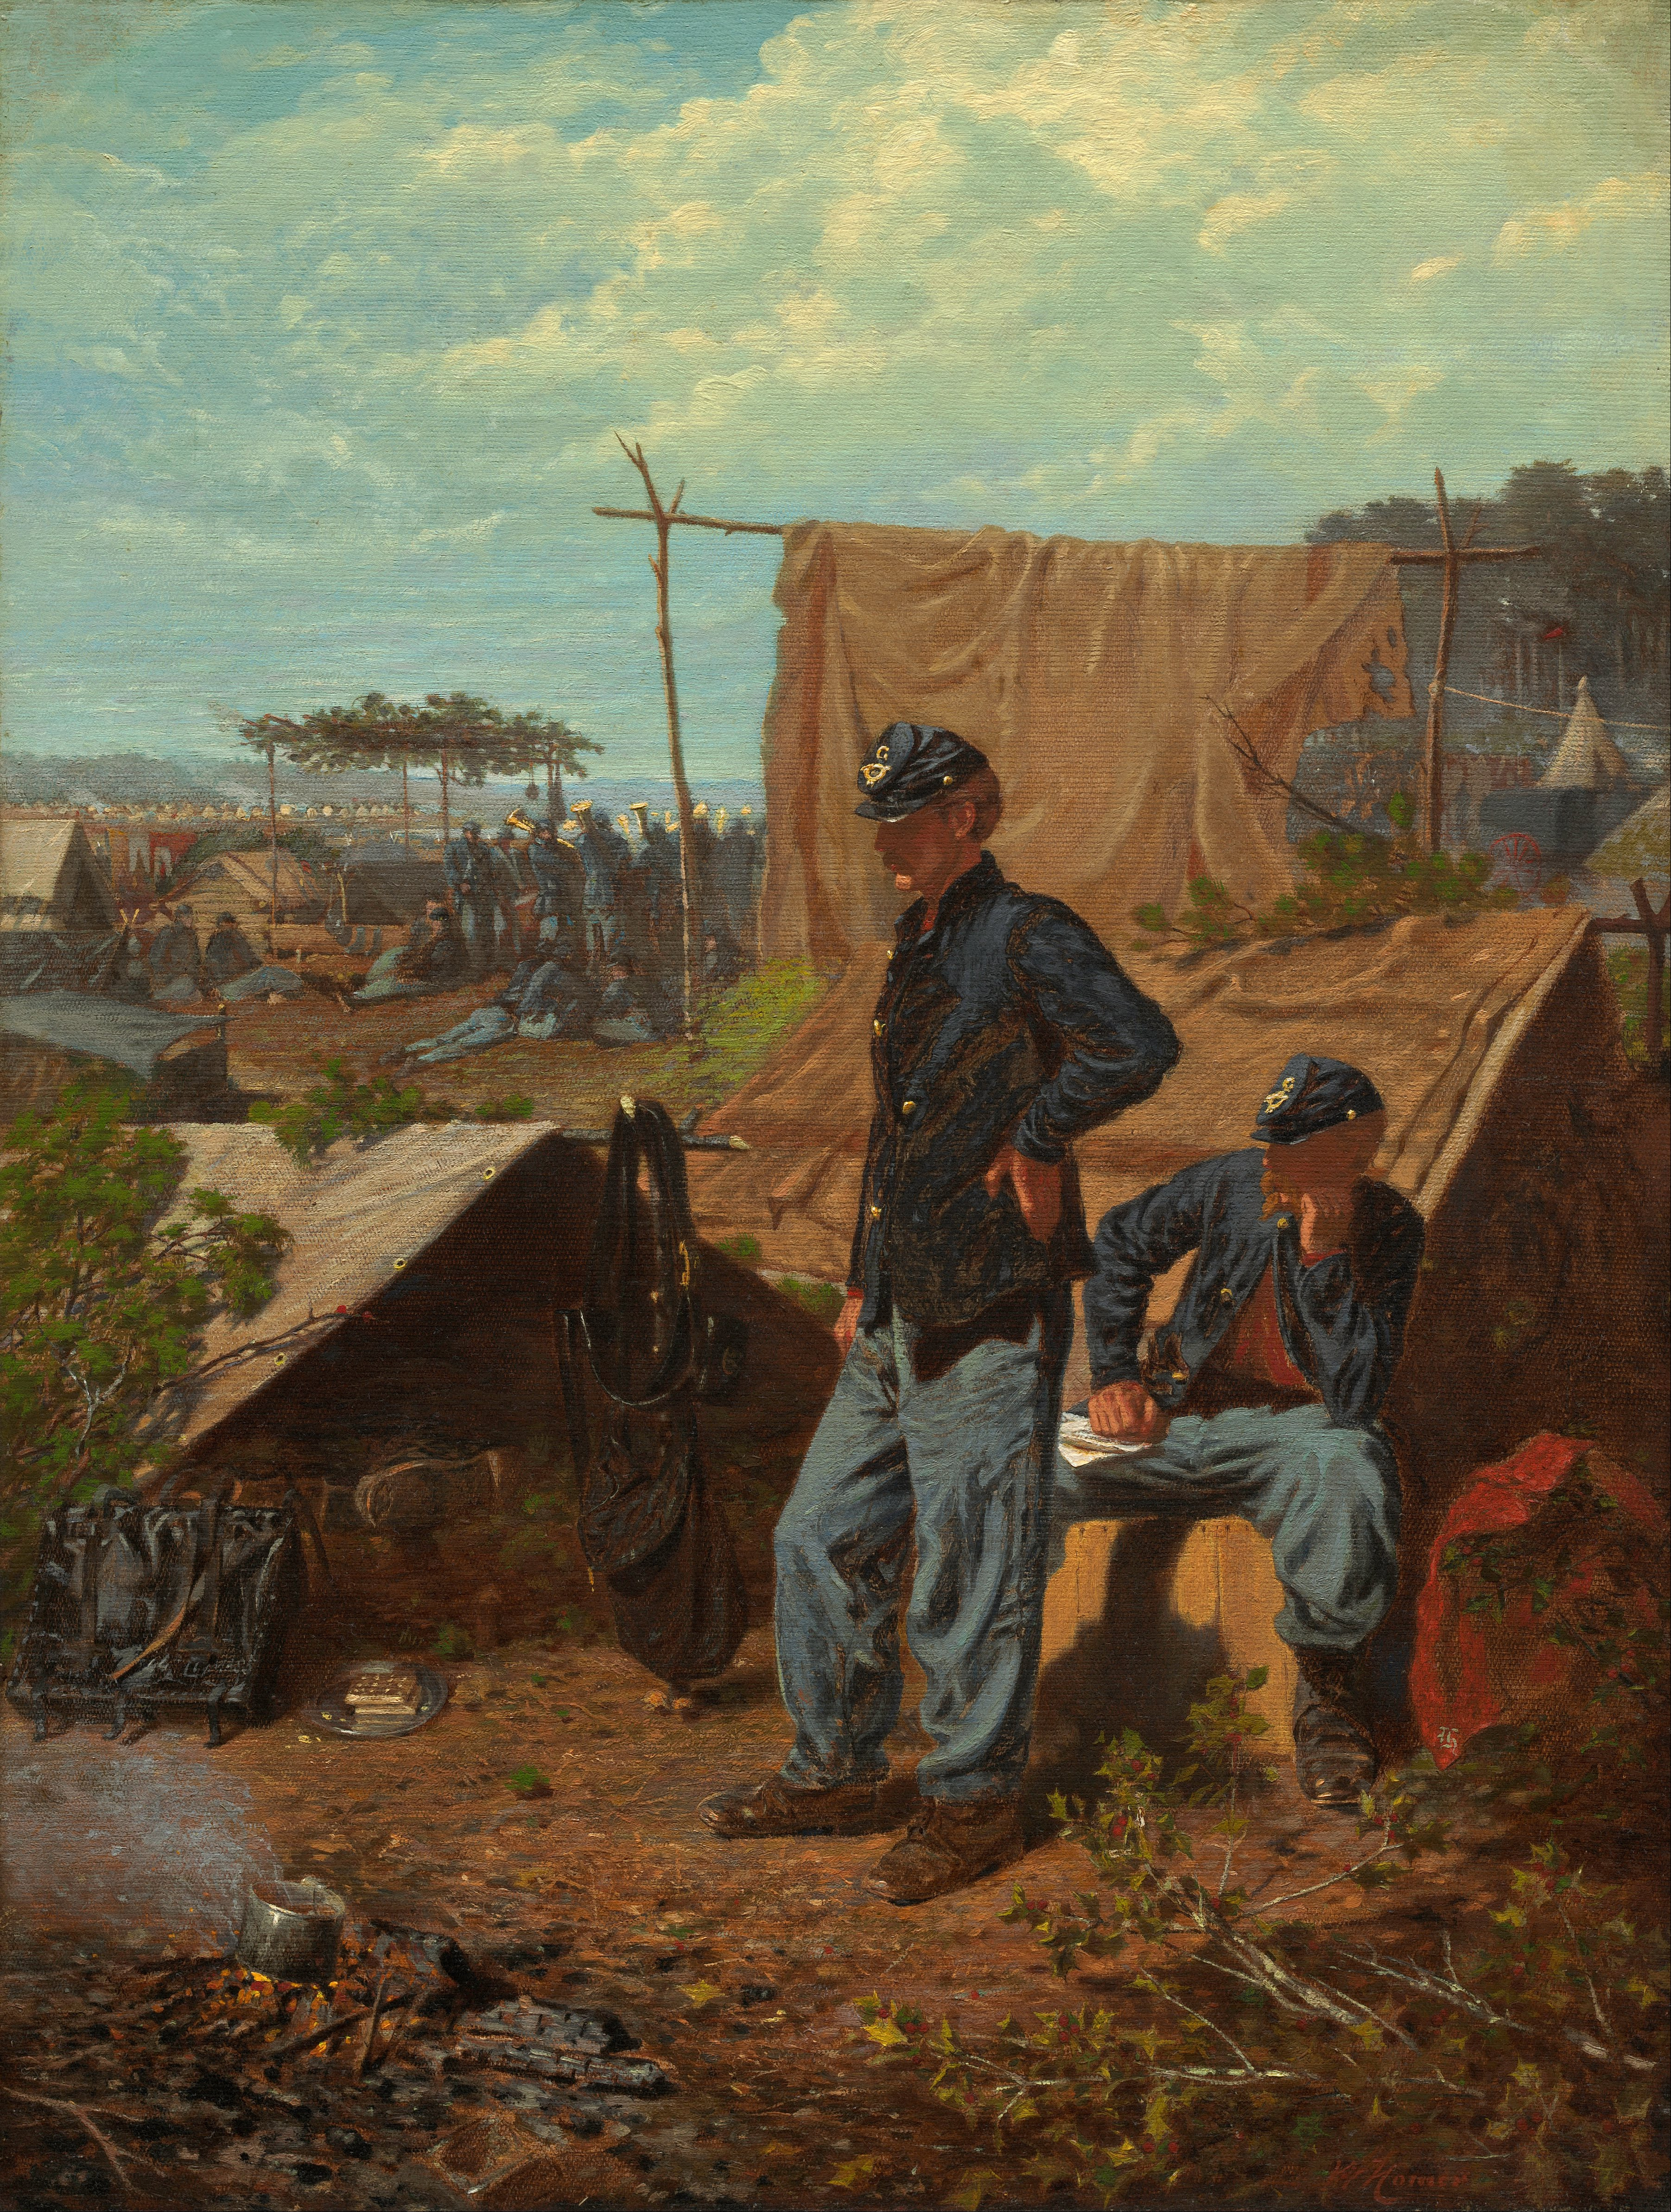 Home sweet home painting - File Winslow Homer Home Sweet Home Google Art Project Jpg